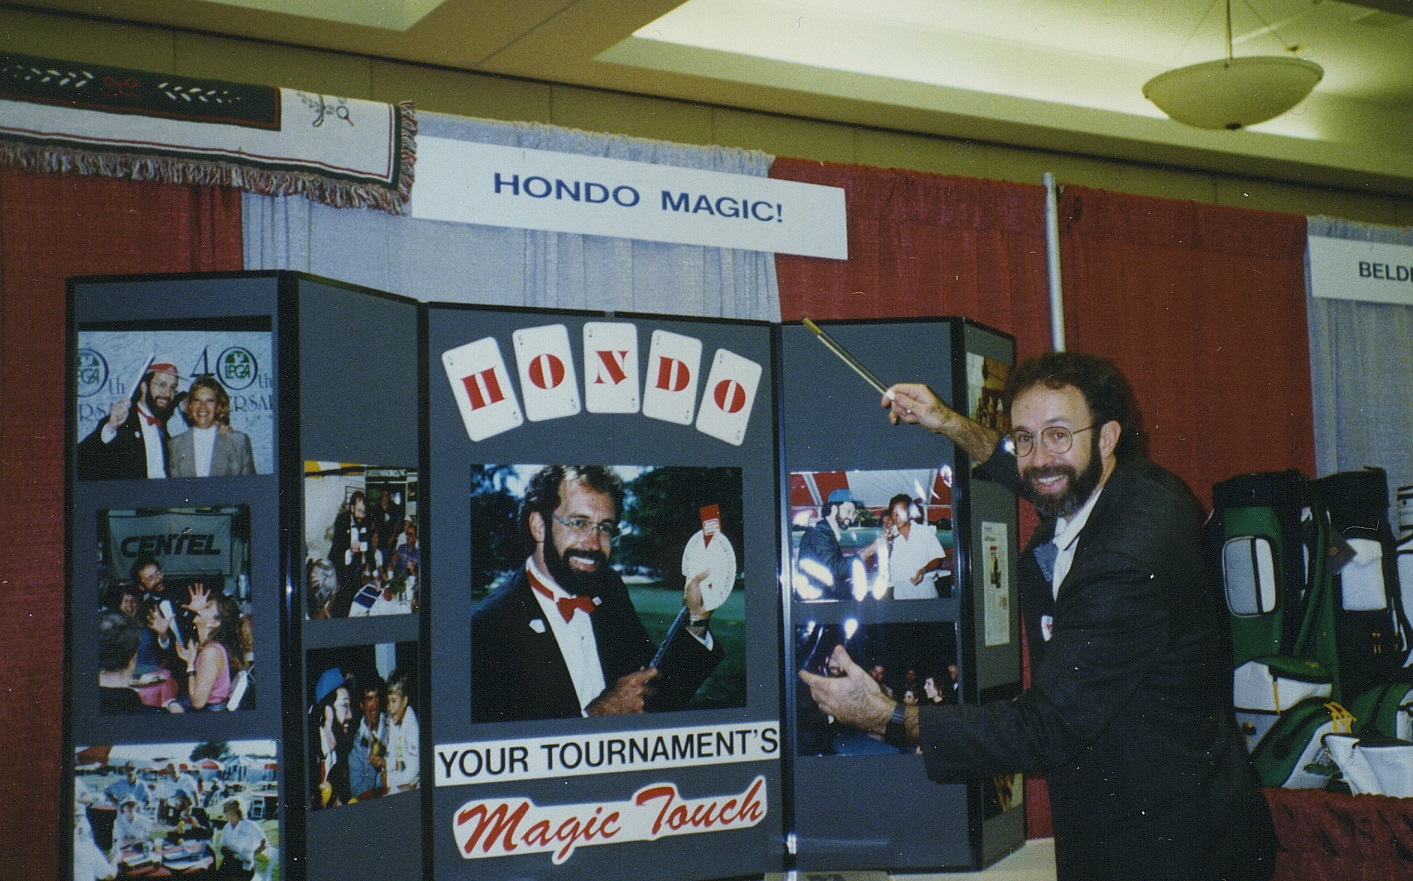 Hondo golf trade show display.jpg